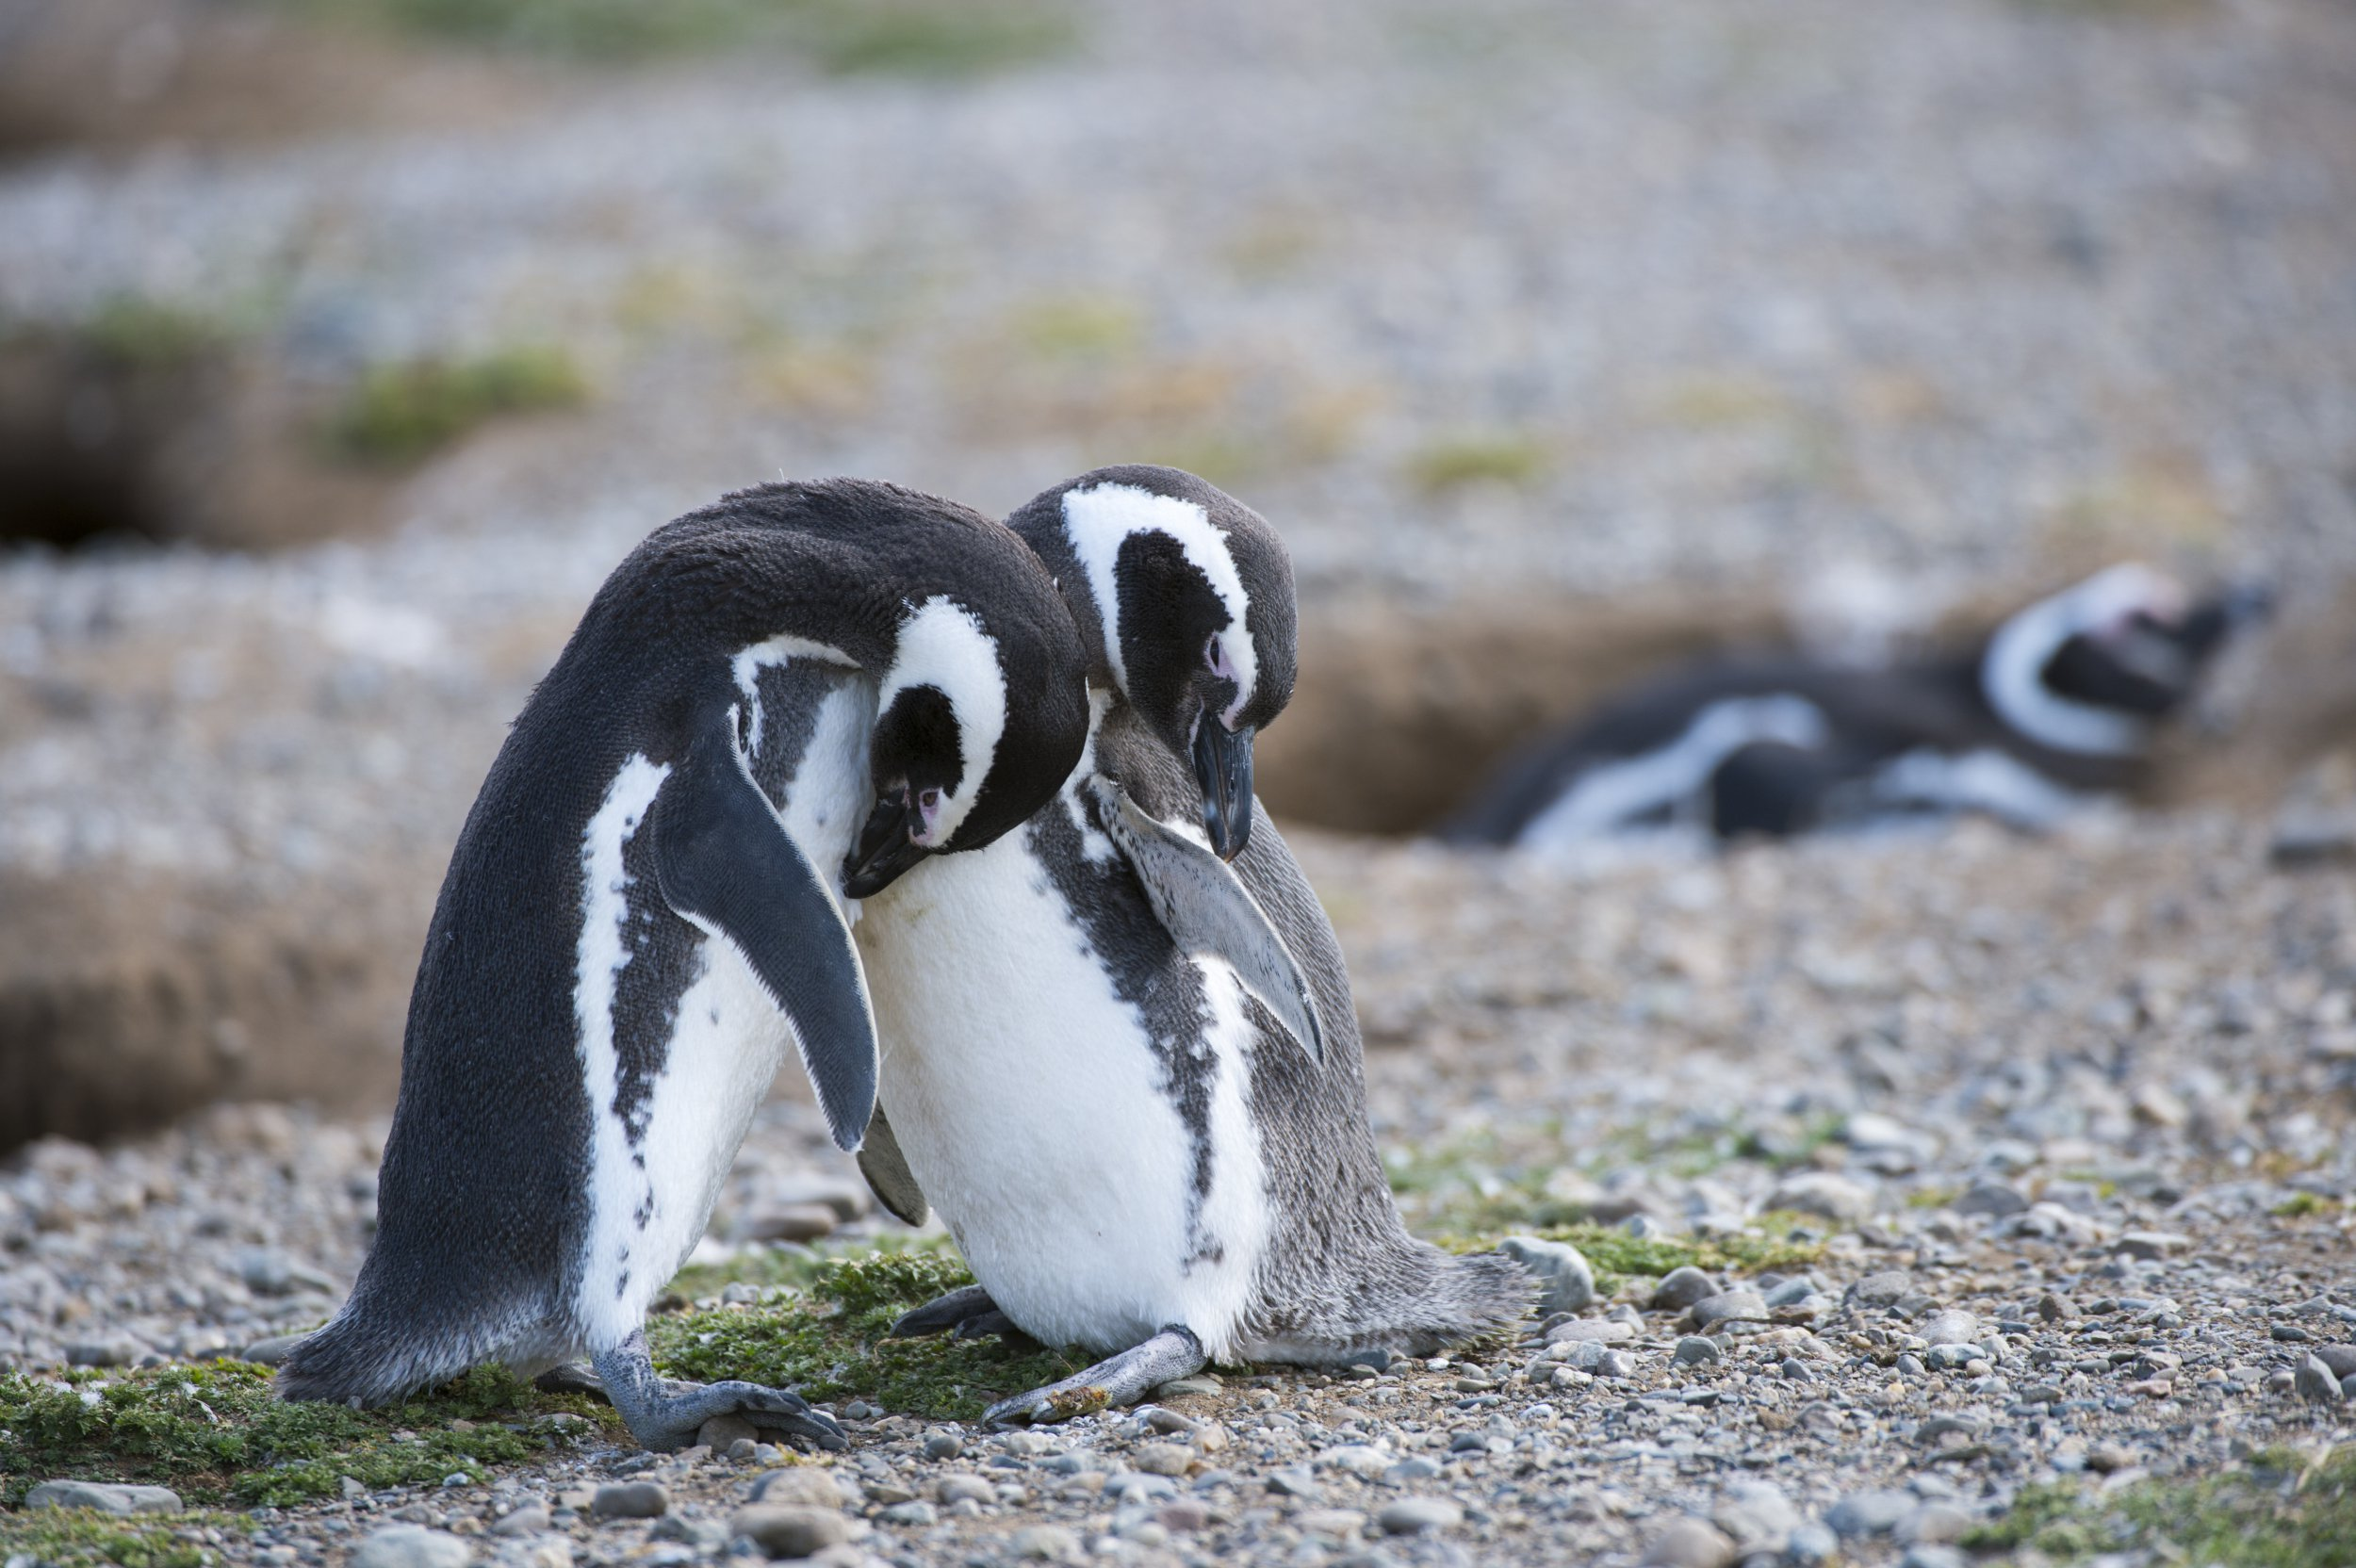 CHILE - 2013/12/18: Magellanic Penguins (Spheniscus magellanicus) preening feathers at the penguin sanctuary on Magdalena Island in the Strait of Magellan near Punta Arenas in southern Chile. (Photo by Wolfgang Kaehler/LightRocket via Getty Images)